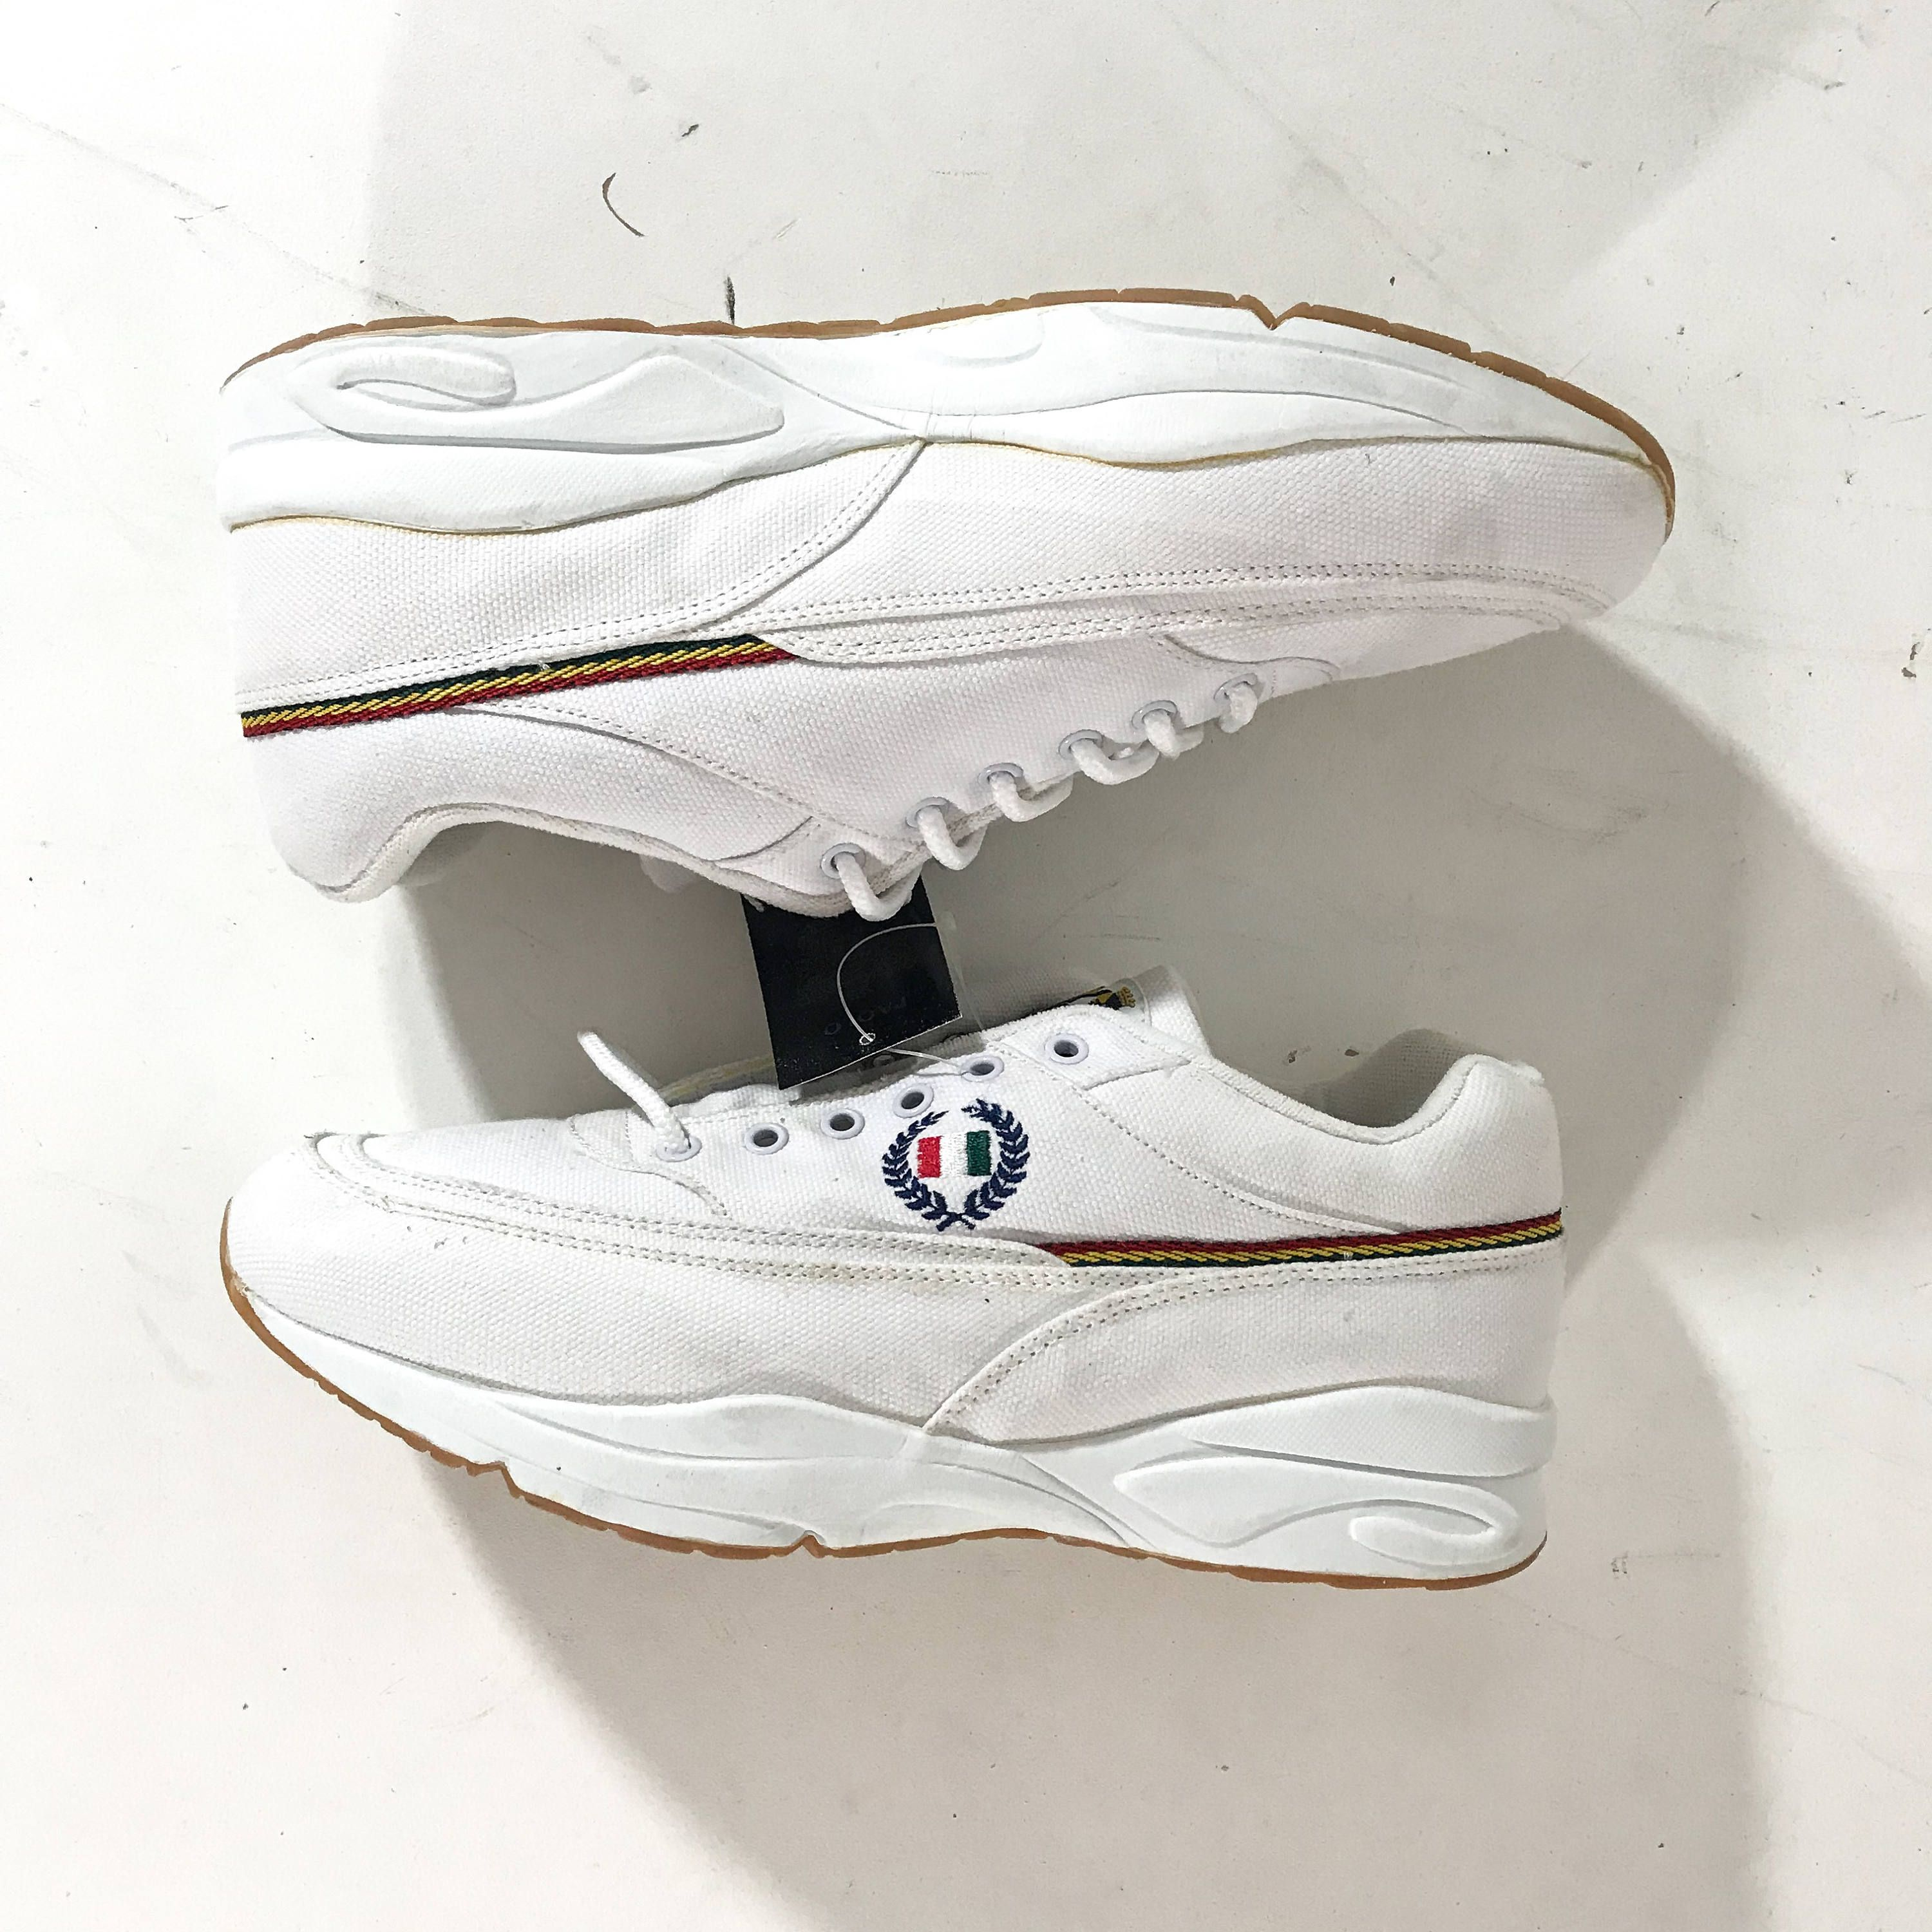 90s Shoes 90s SNEAKERS Vintage Shoes